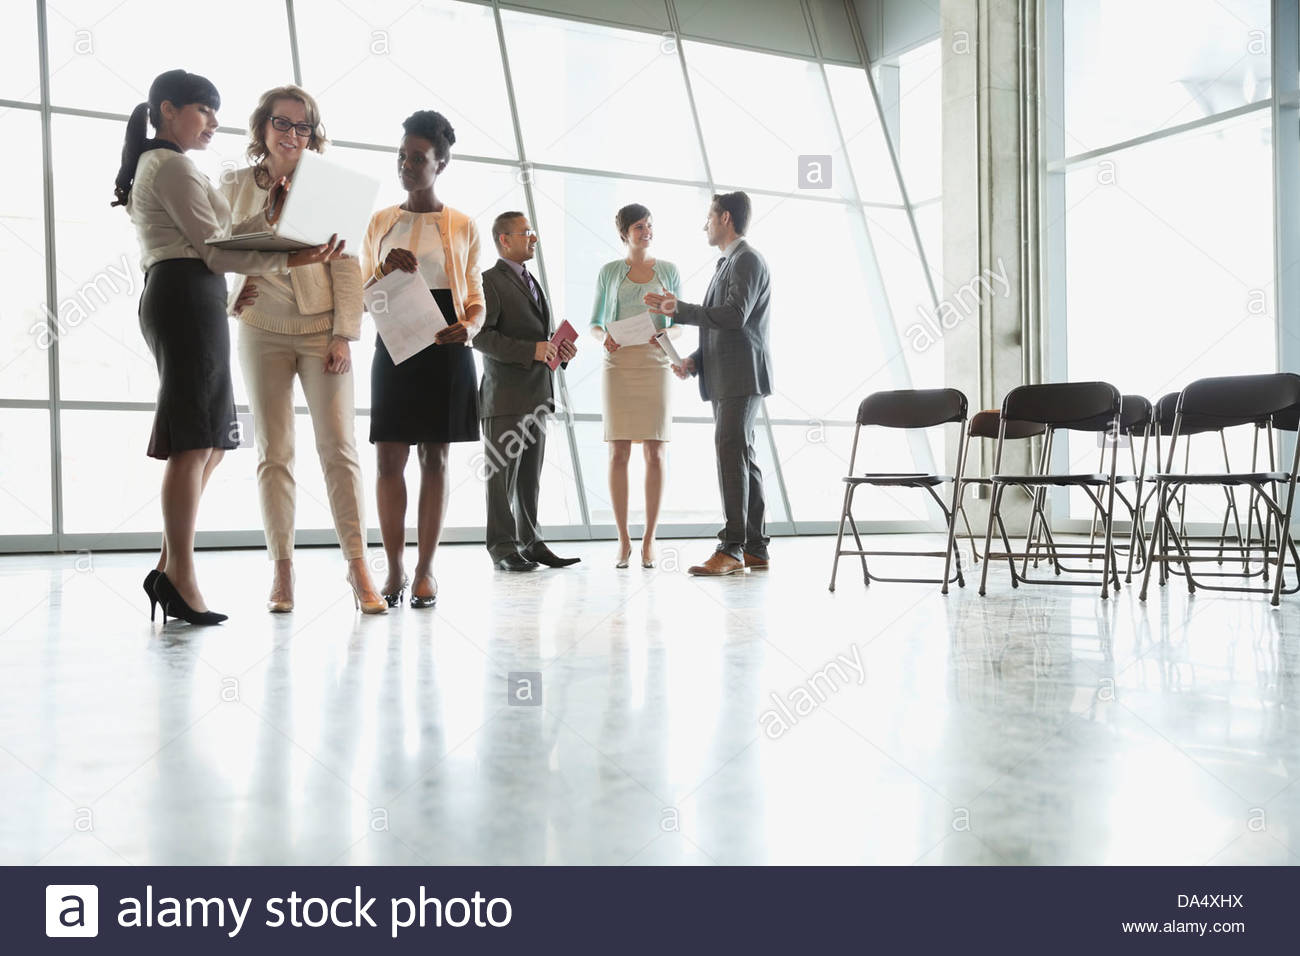 Group of business people talking together in office building - Stock Image